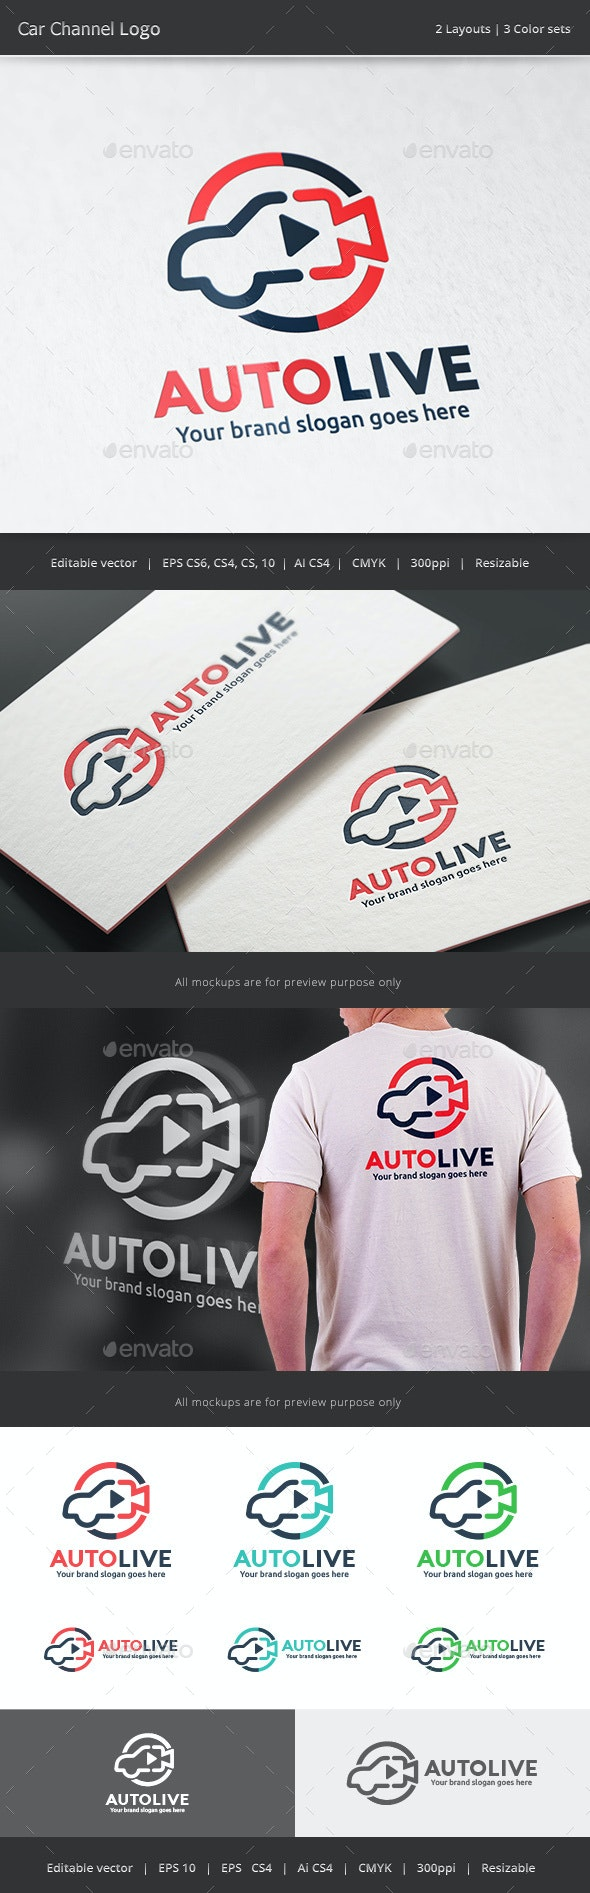 Car Channel Logo - Vector Abstract